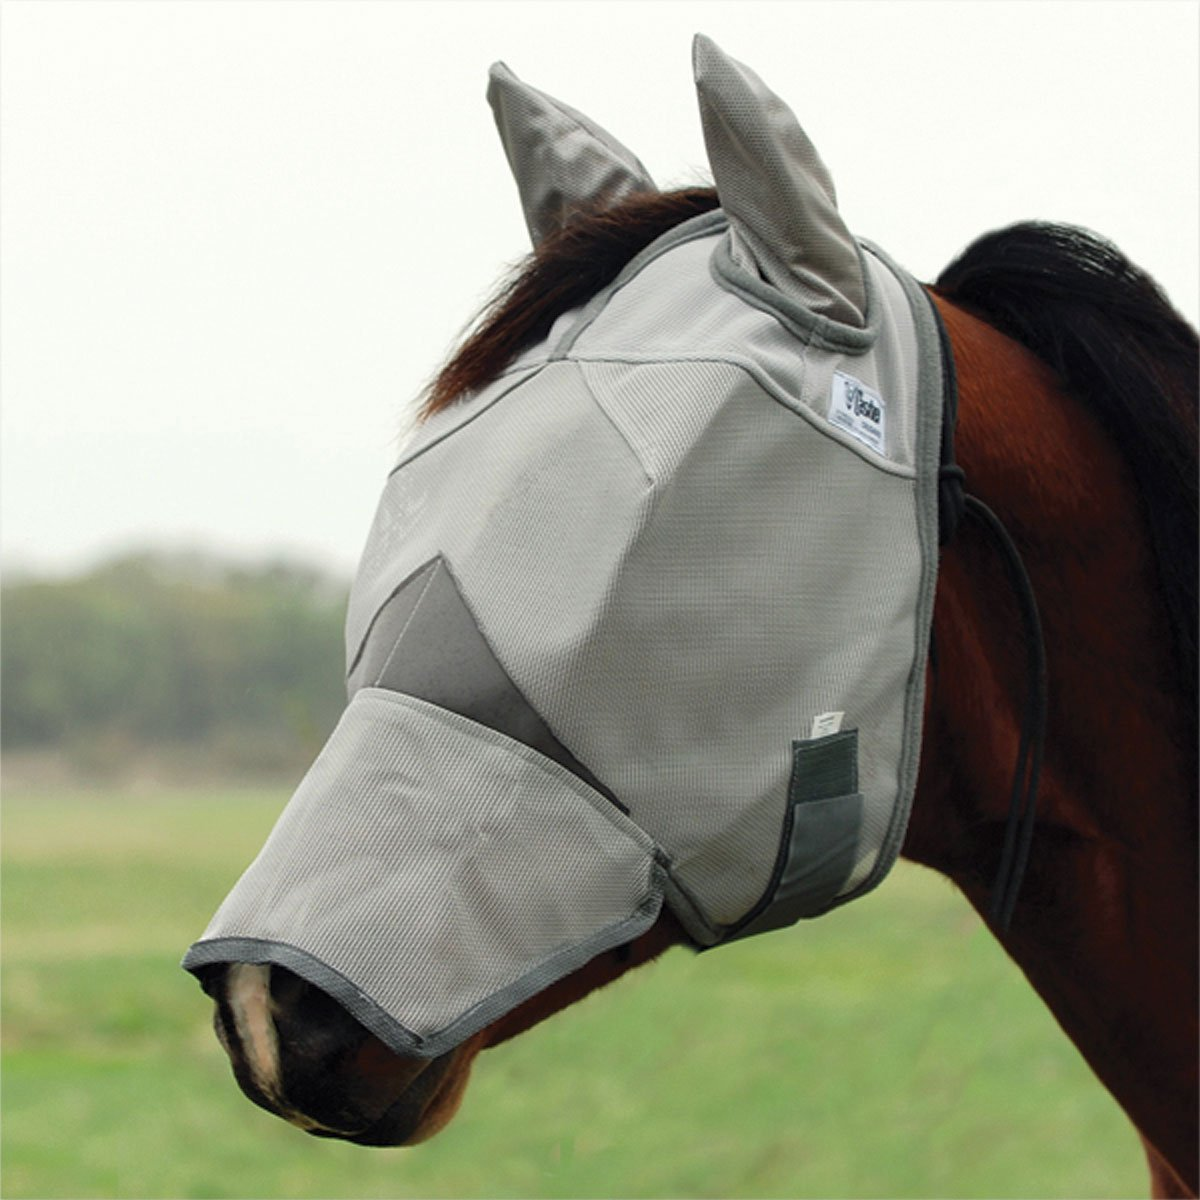 Cashel Crusader Fly Mask with Ears and Long Nose - Size: Yearling, Large Pony